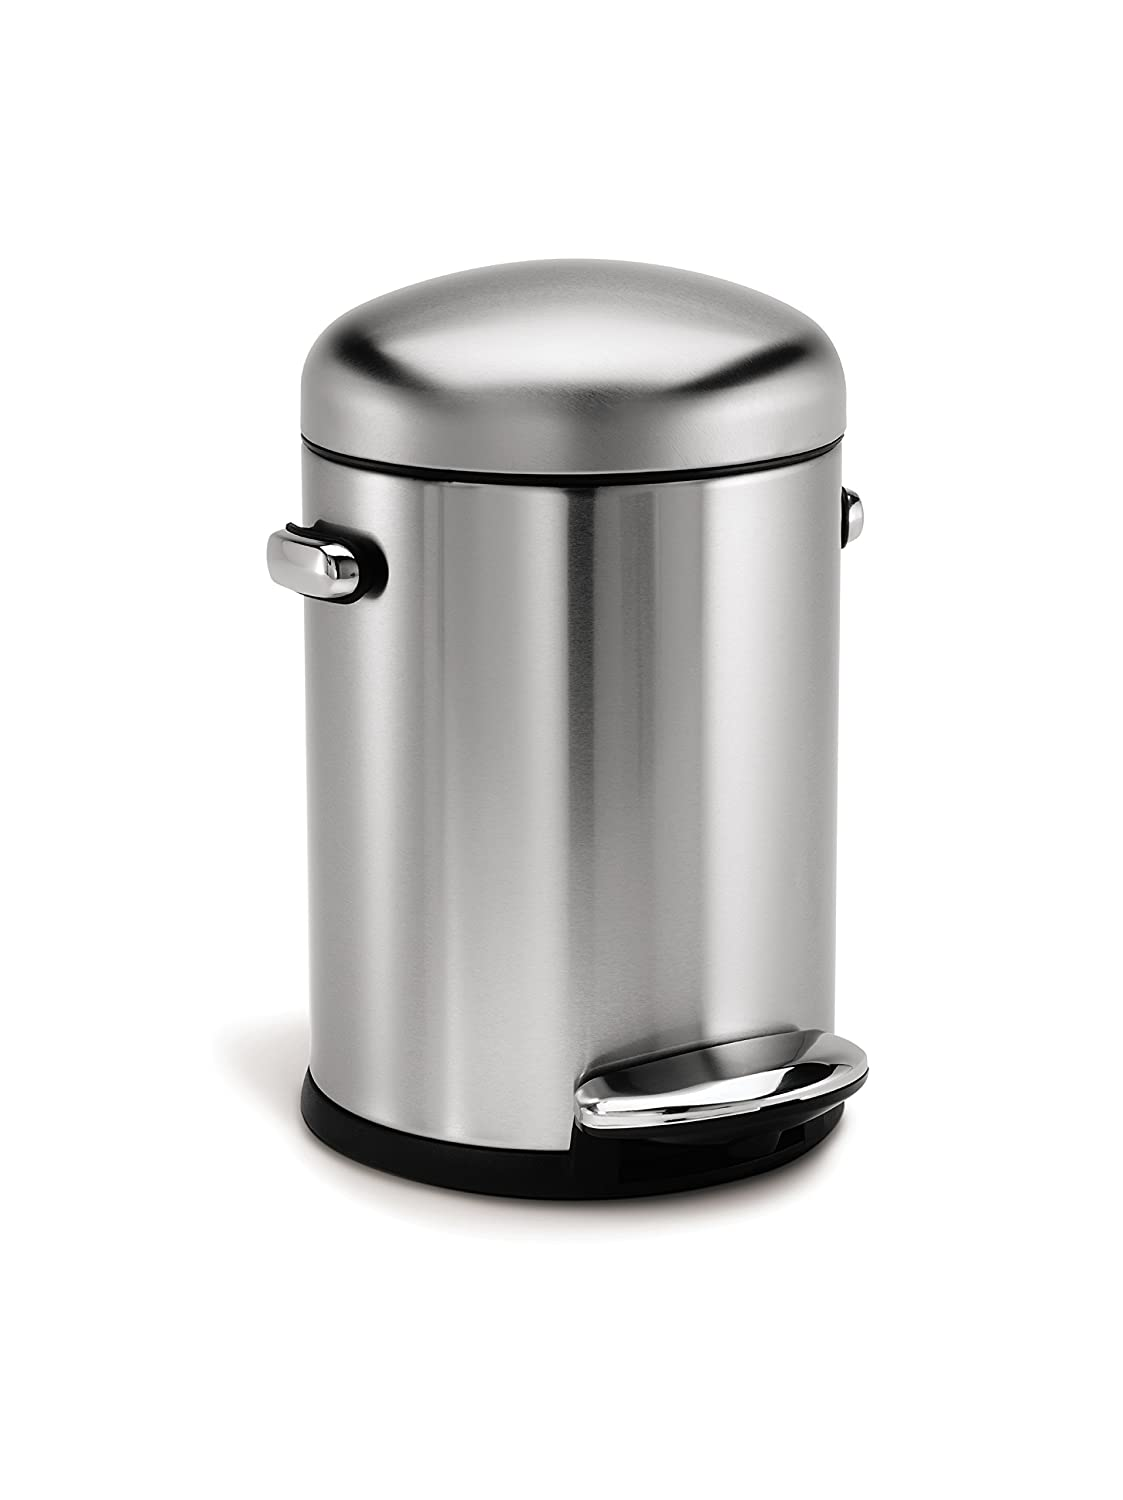 simplehuman Retro Pedal Bin, 4.5 L - Fingerprint-Proof Brushed Stainless Steel CW1888